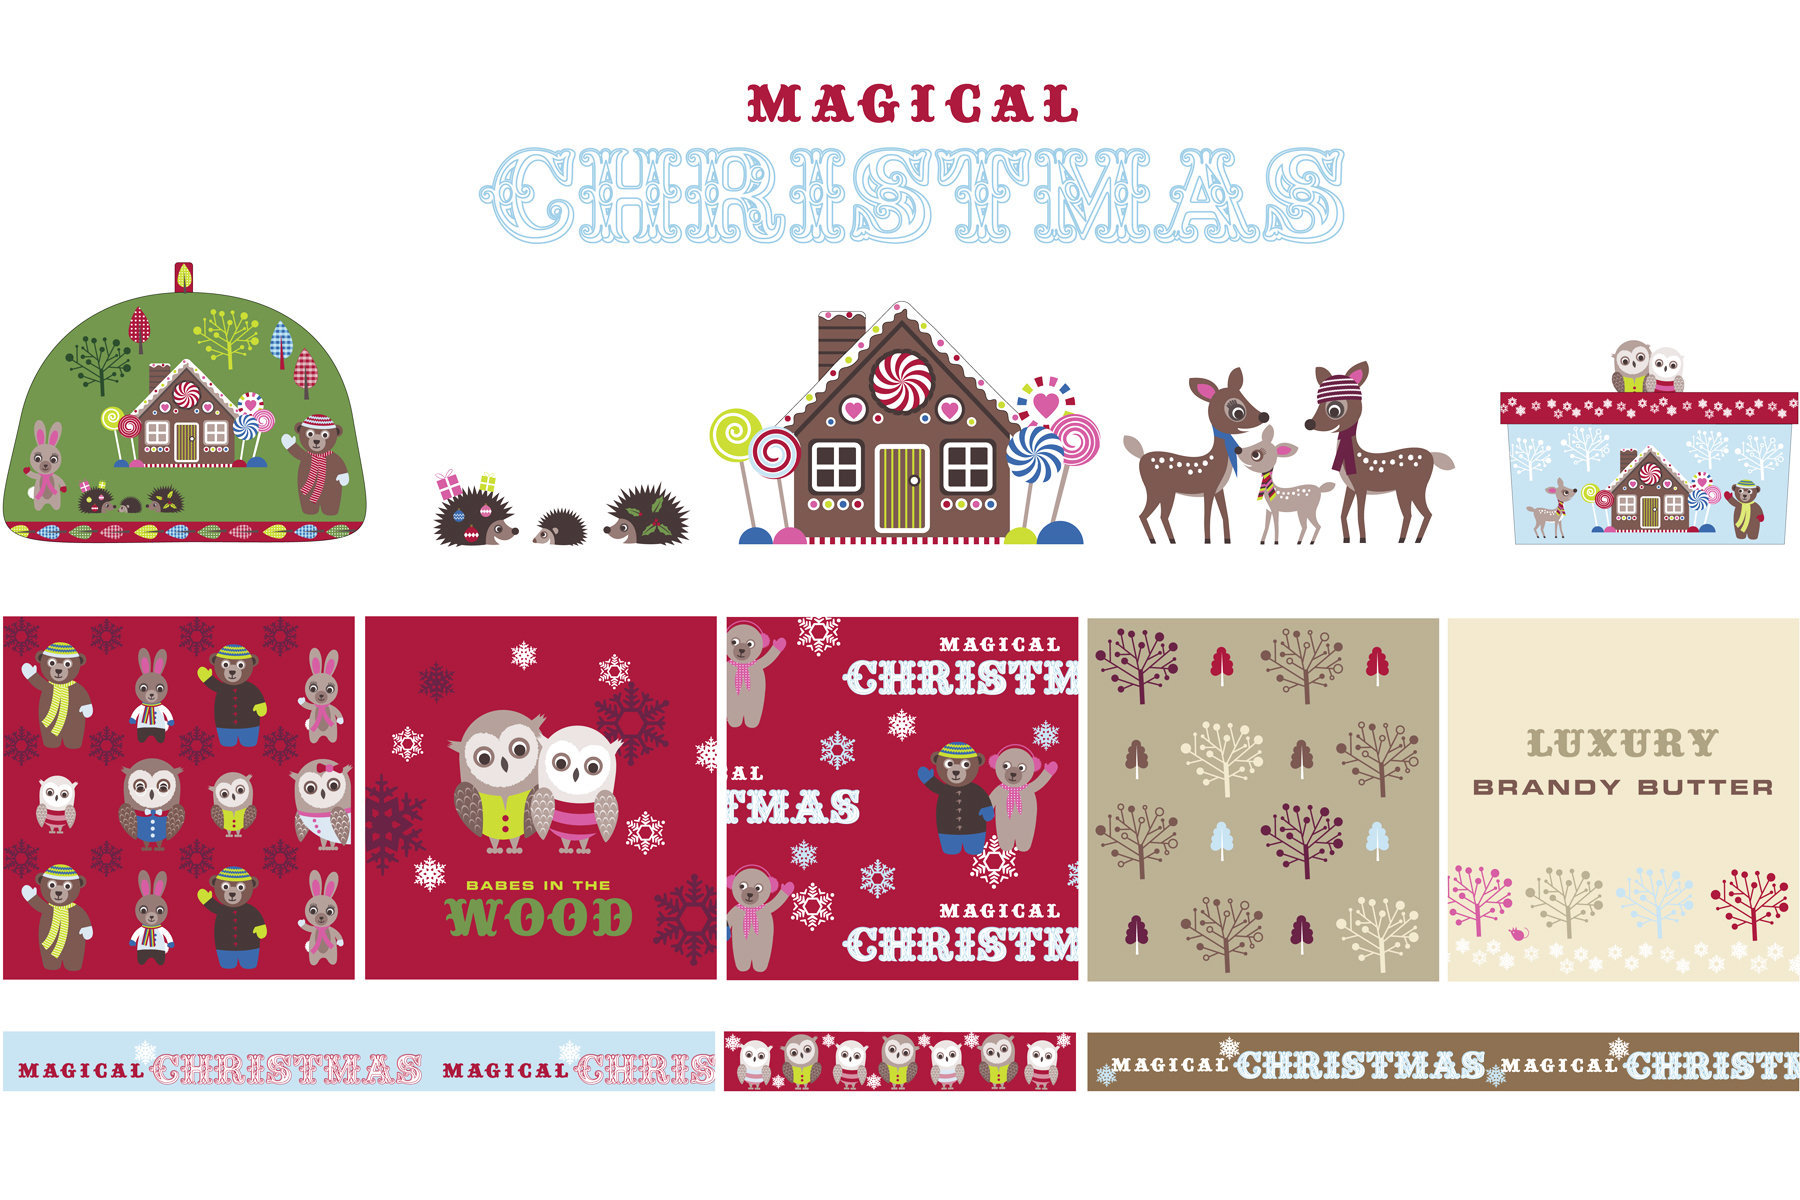 A Christmas scheme showing animal characters, icons, pattern and product. 